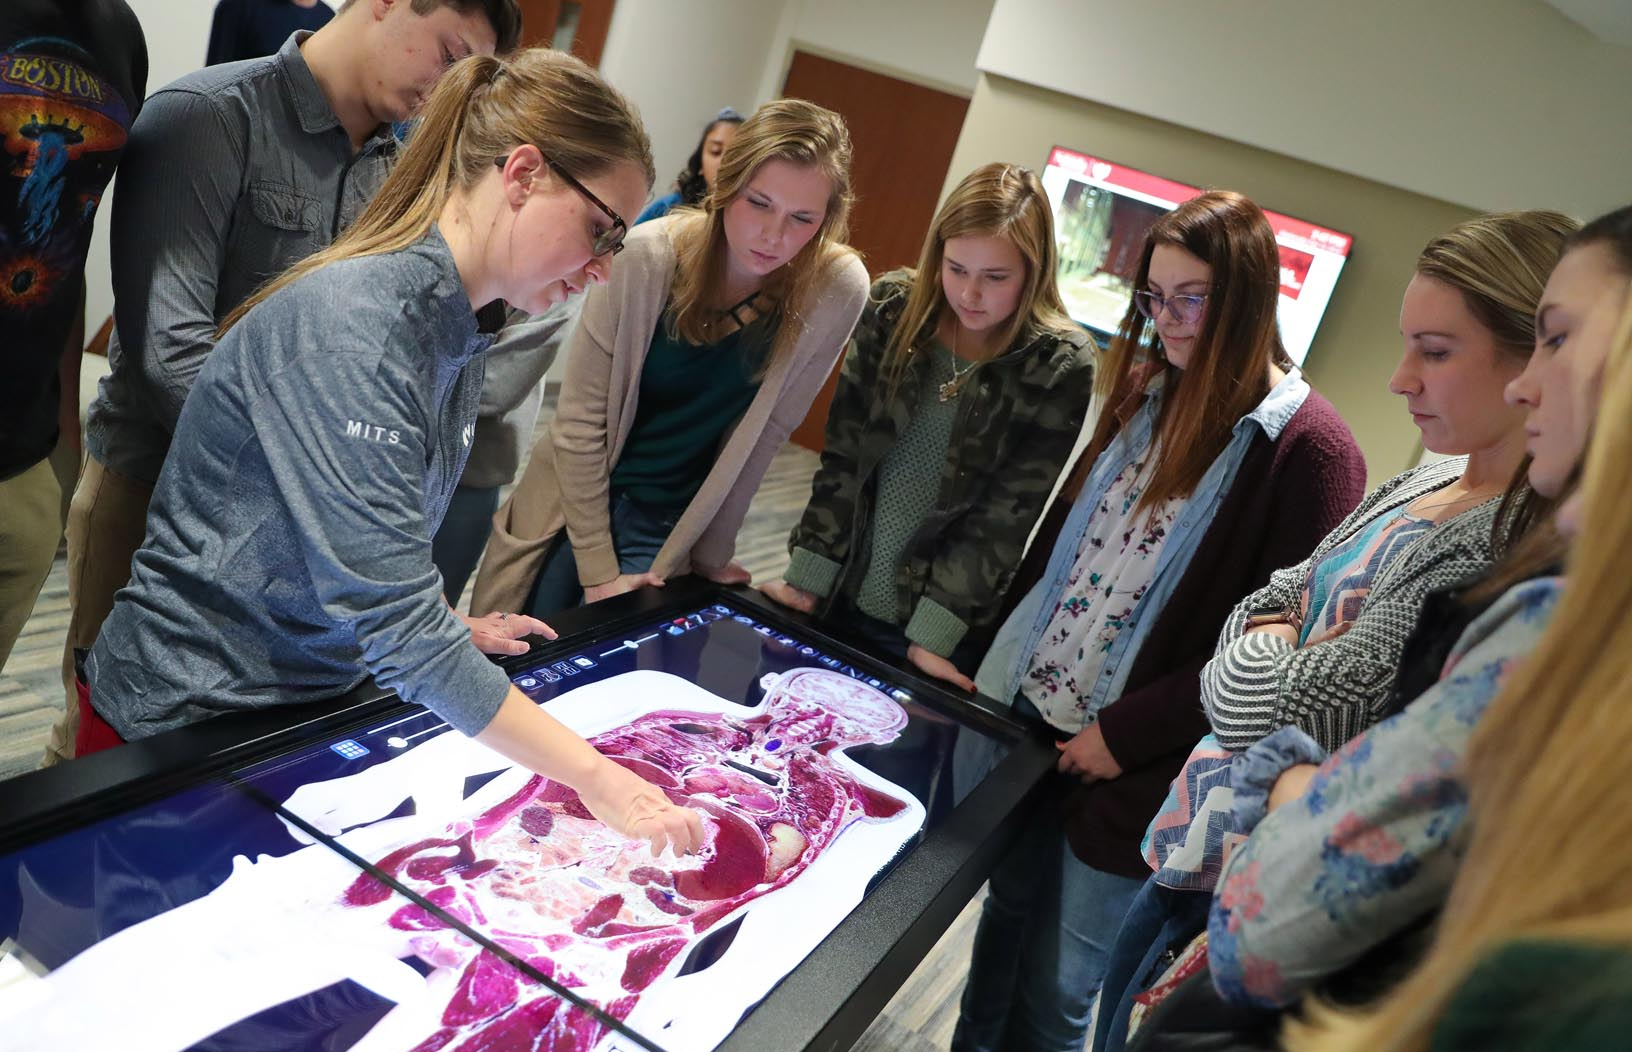 High school students view a demonstration of the Anatomage Table inside the University of Nebraska Medical Center's Health Science Ed Complex at UNK. (Photo by Corbey R. Dorsey, UNK Communications)